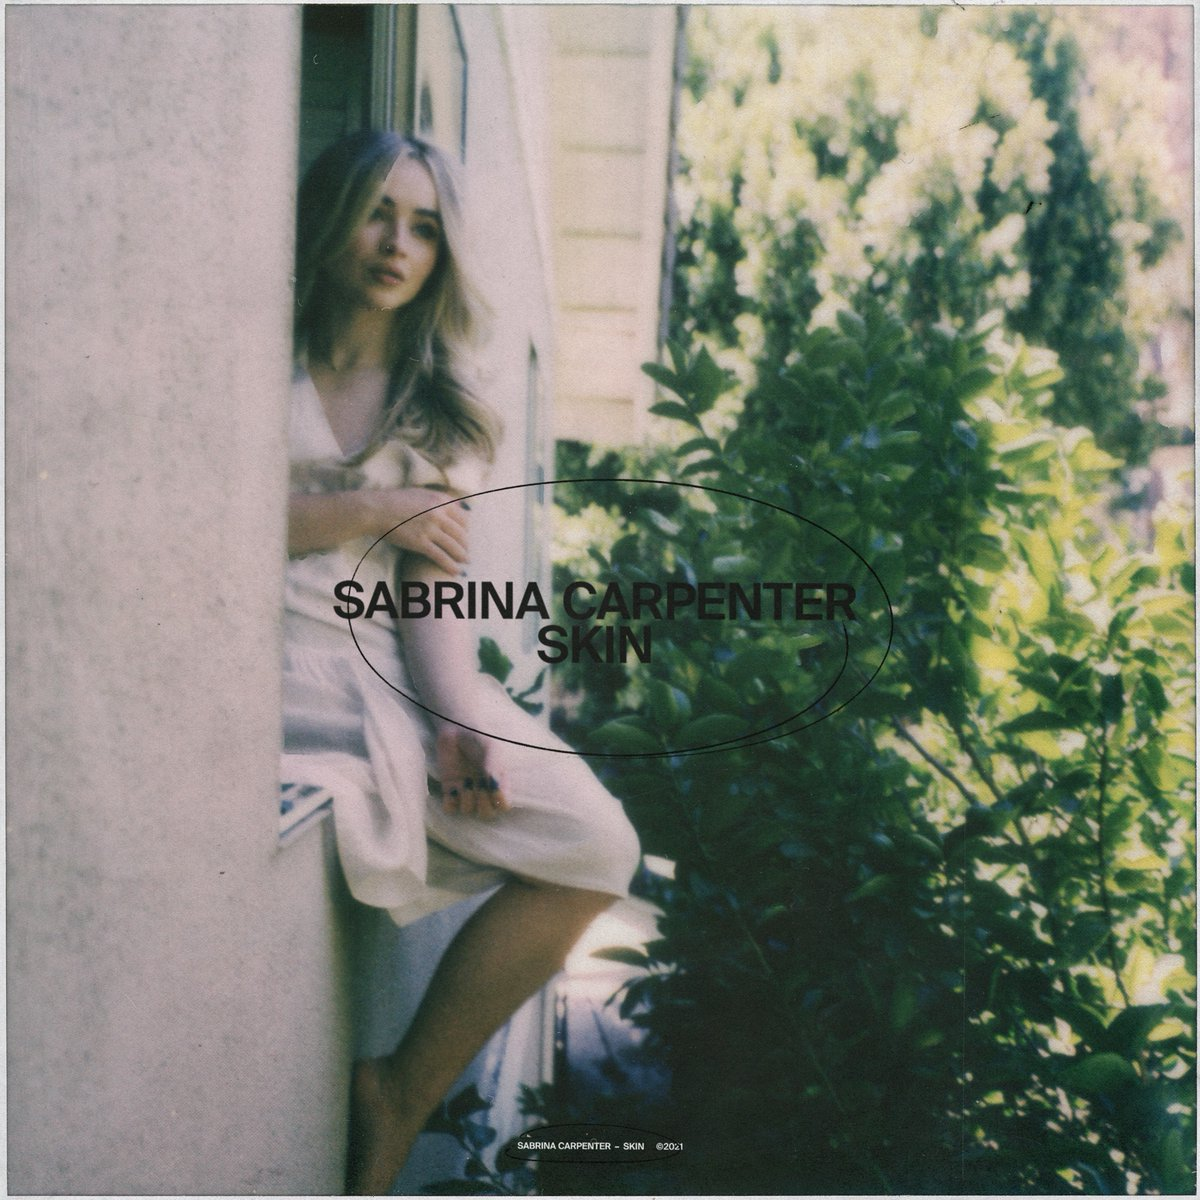 """.@SabrinaAnnLynn confirms that """"Skin"""" is a not a diss track, explains lyrics in open letter to fans:"""